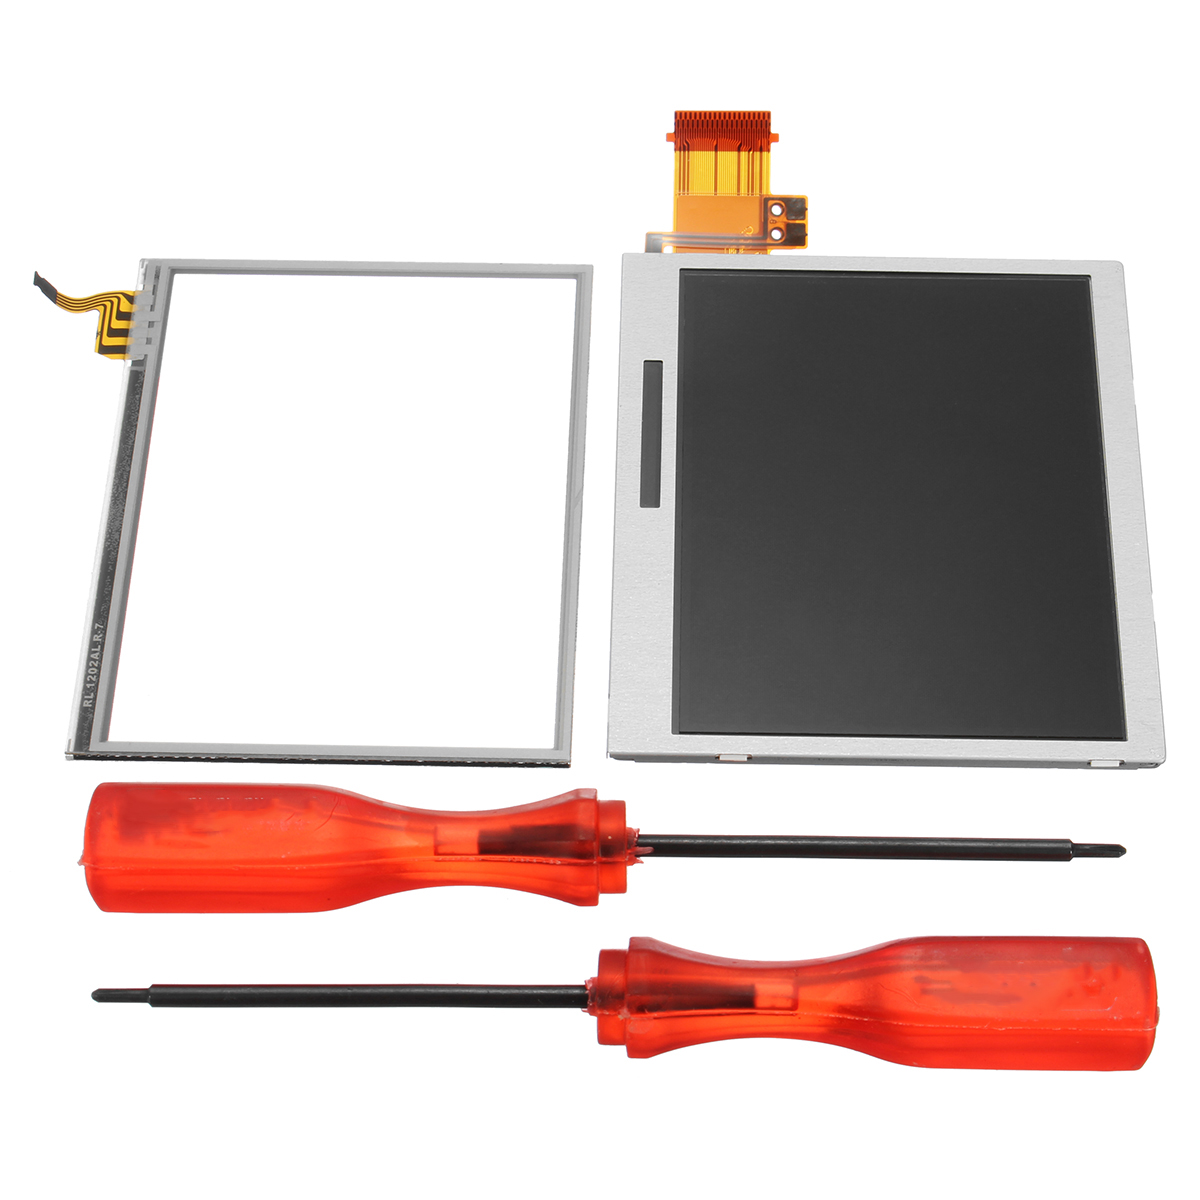 Bottom LCD Display Touch Screen Replacement Tool For Nintendo DS Lite DSL NDSL